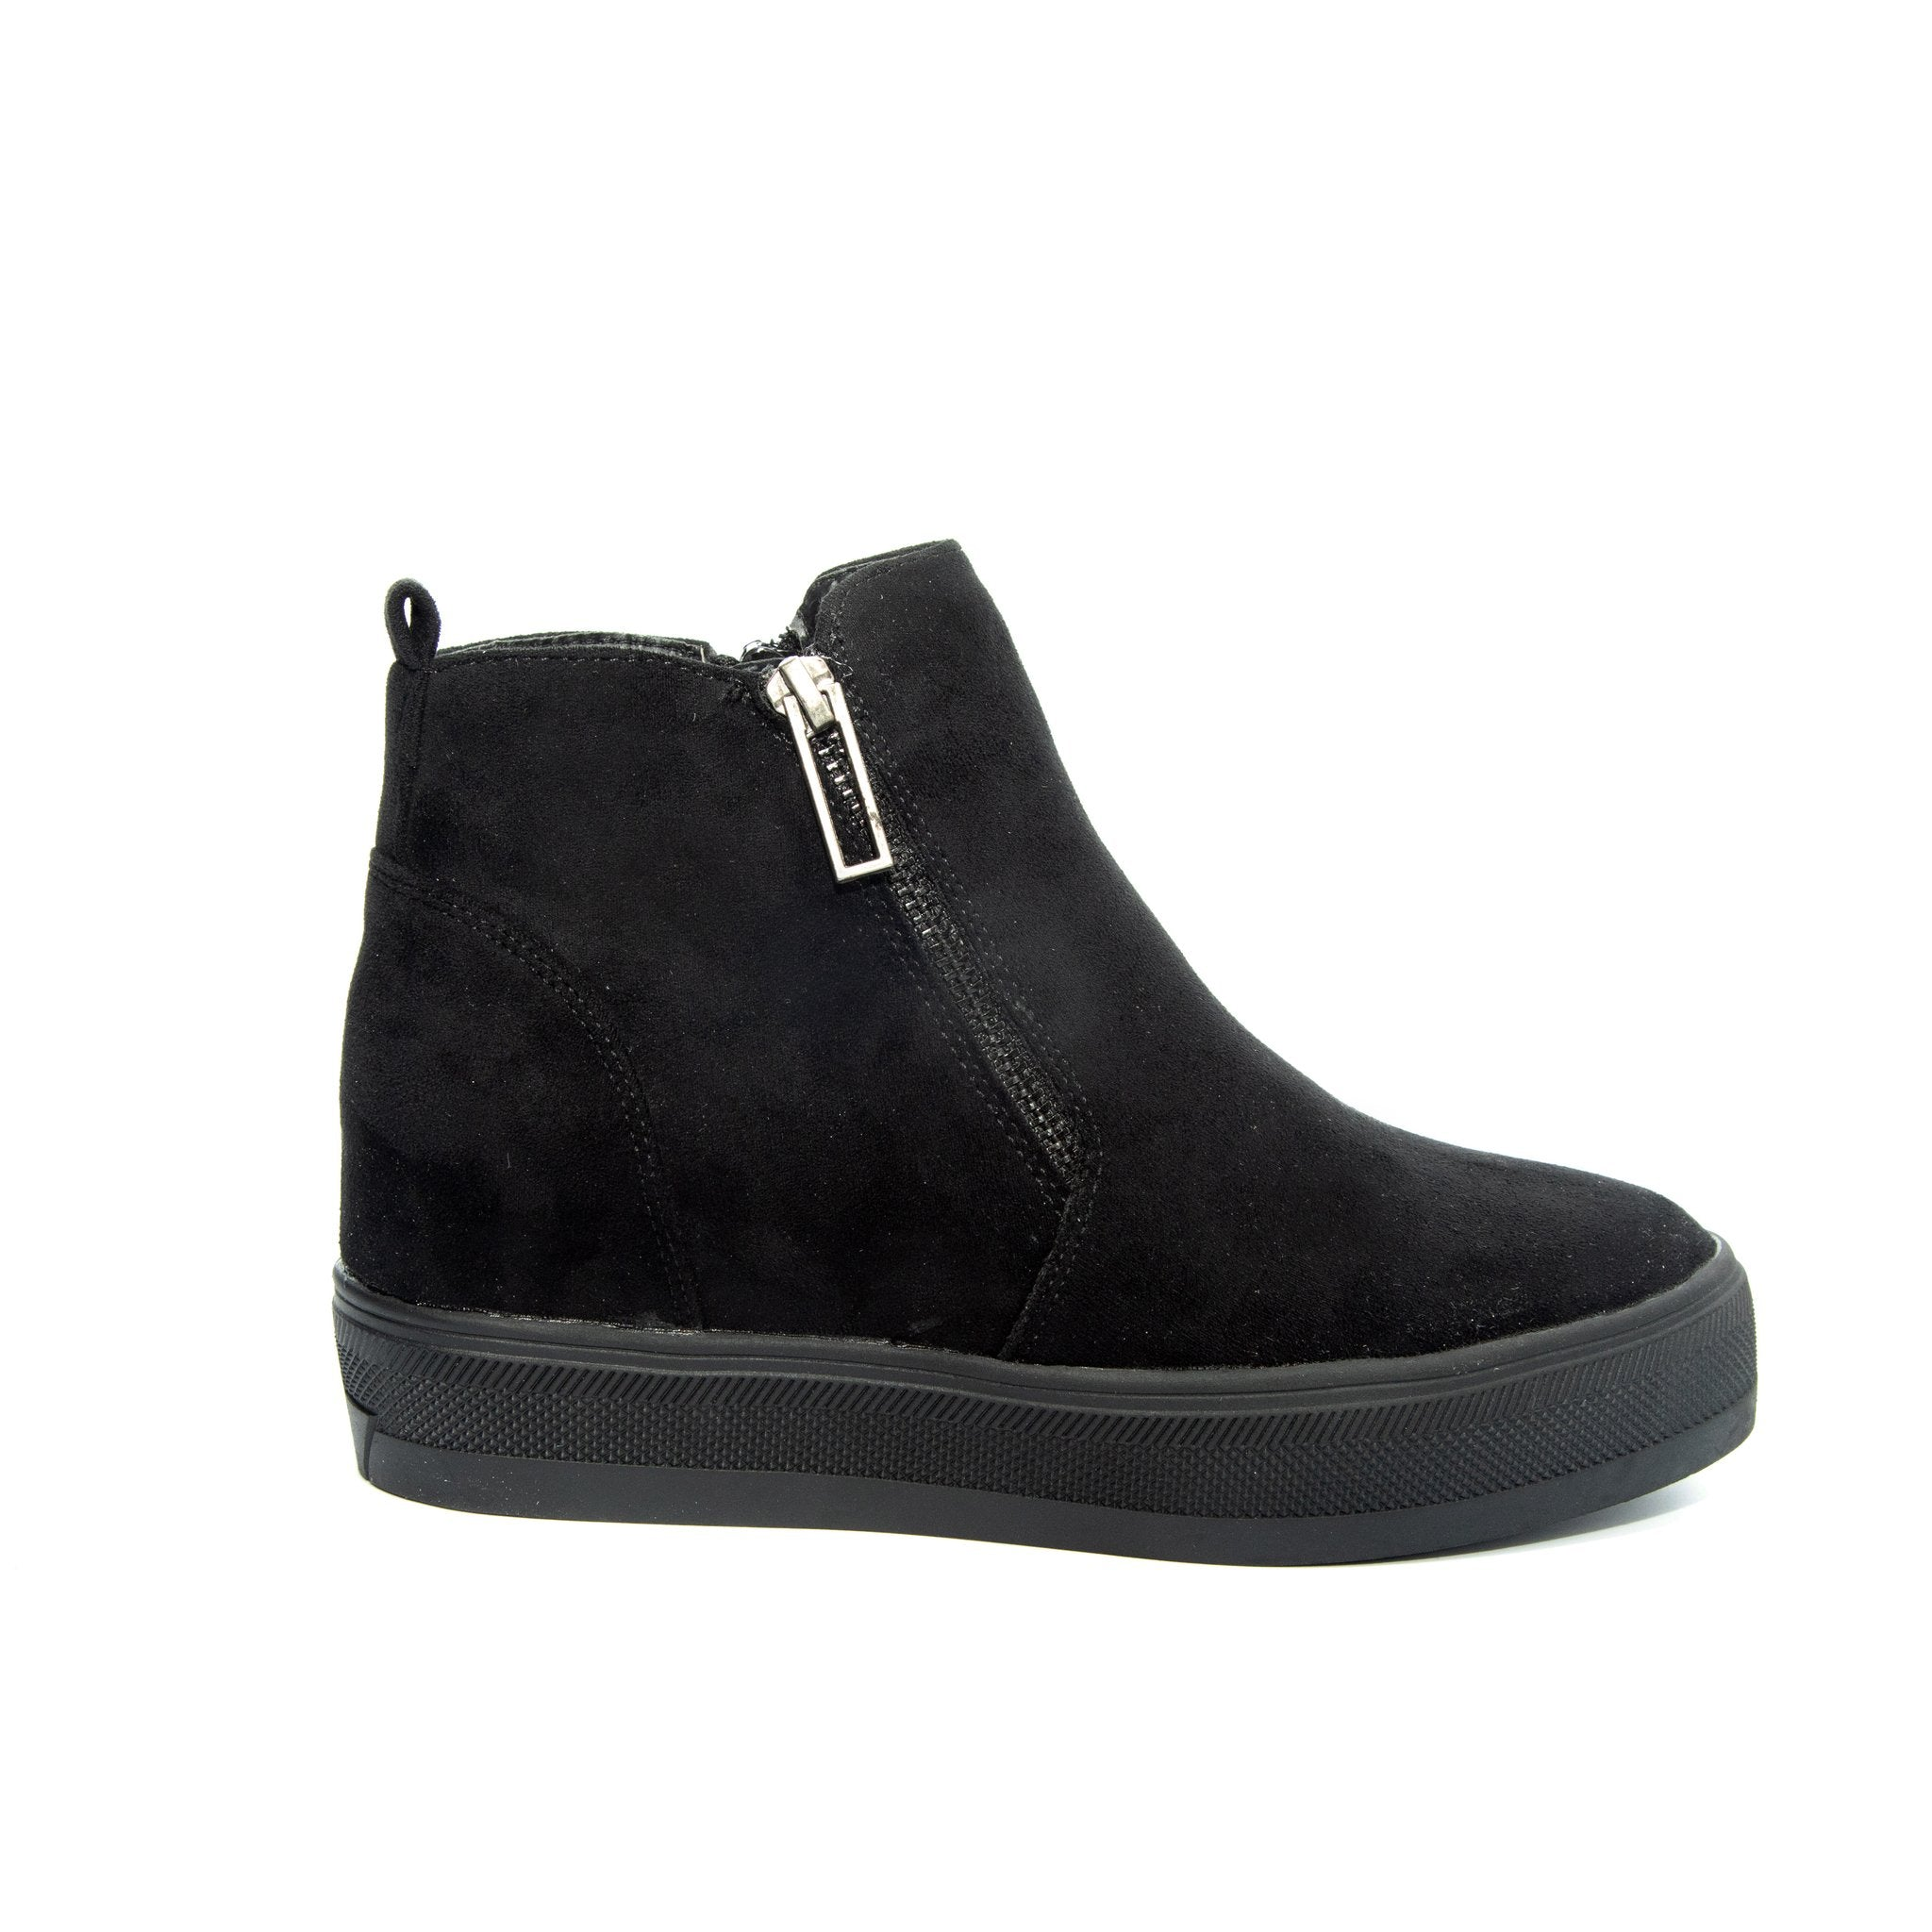 Solo by Dolce Nome | Flat Zipper Ankle Boots in Black (side view)